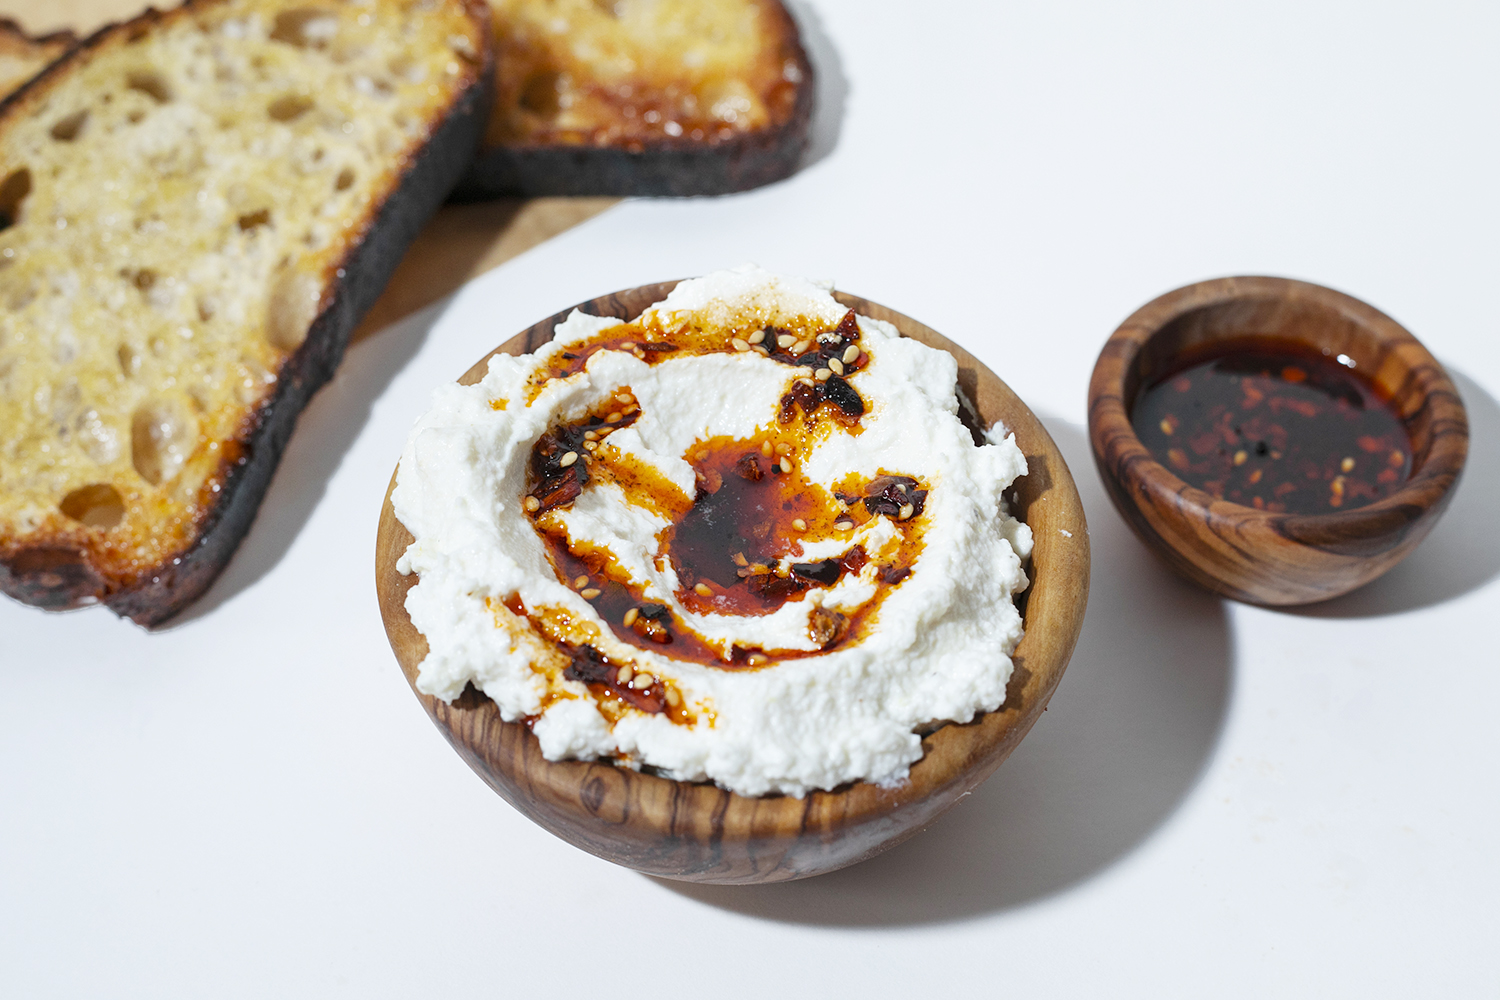 whipped ricotta with momofuku chili crunch in a bowl